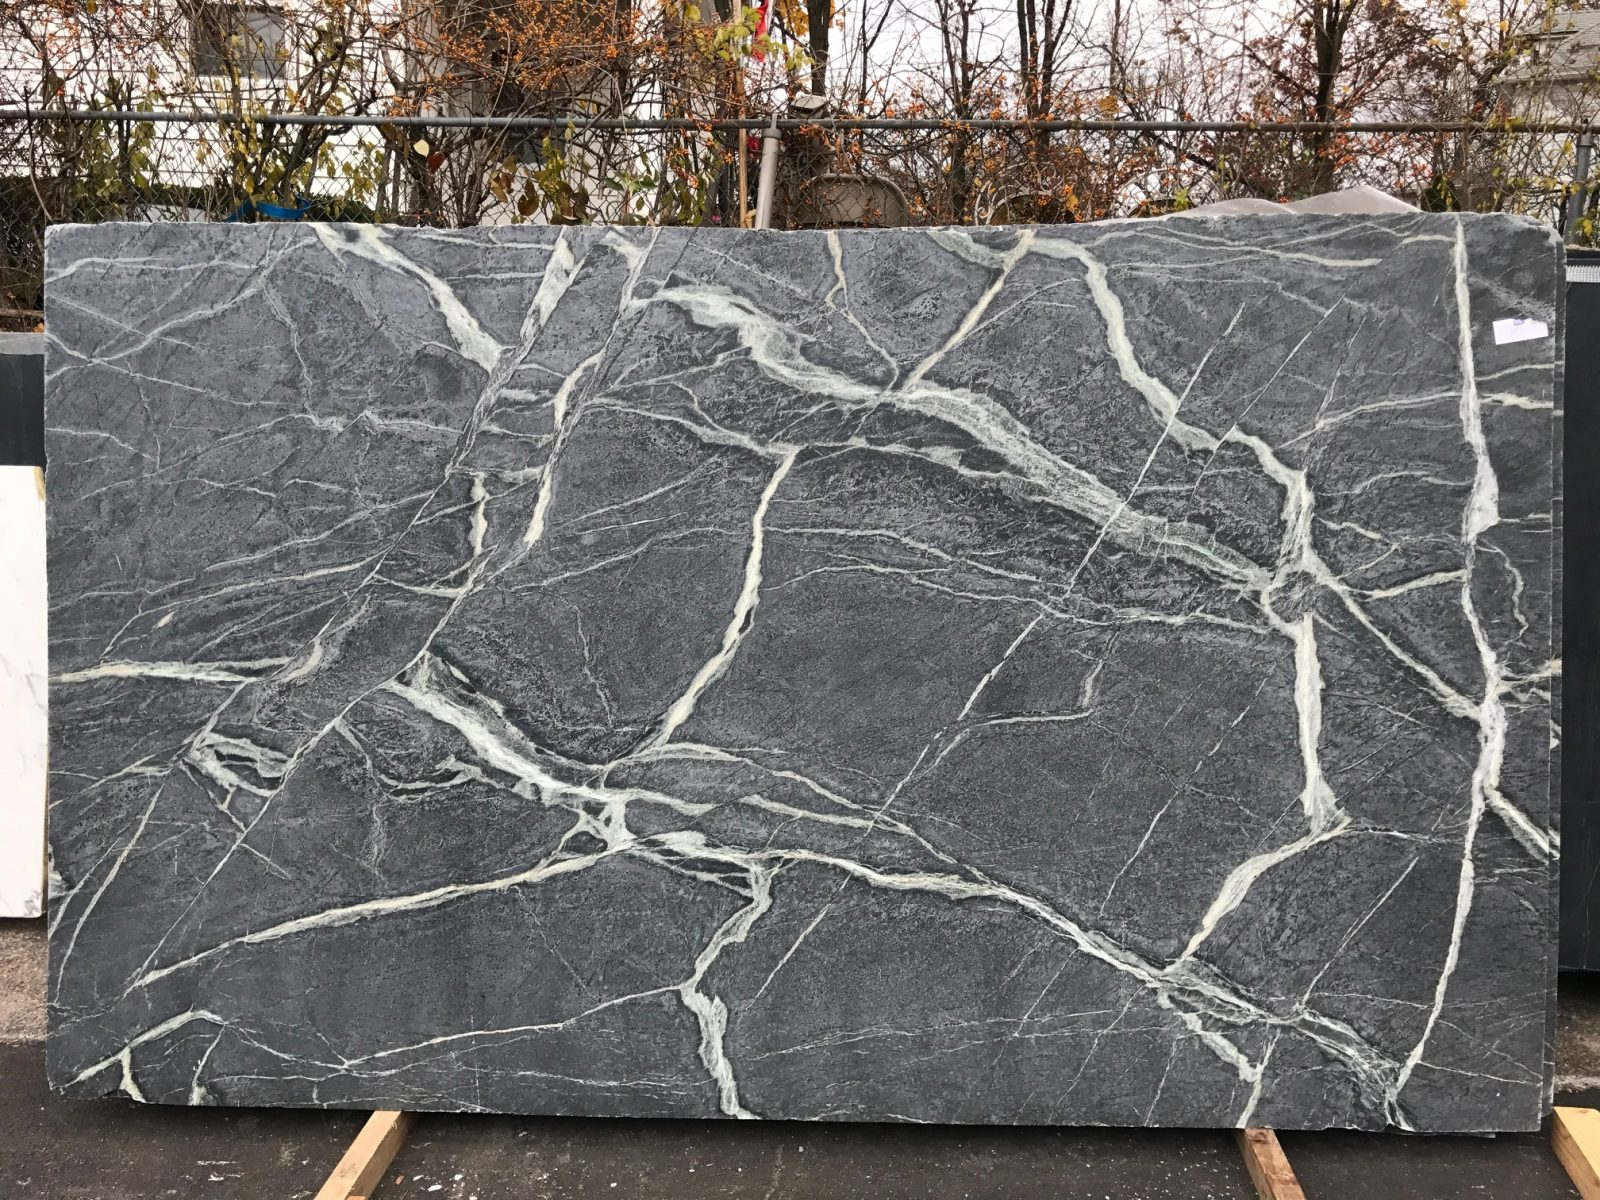 slab of black soapstone with white veins outside